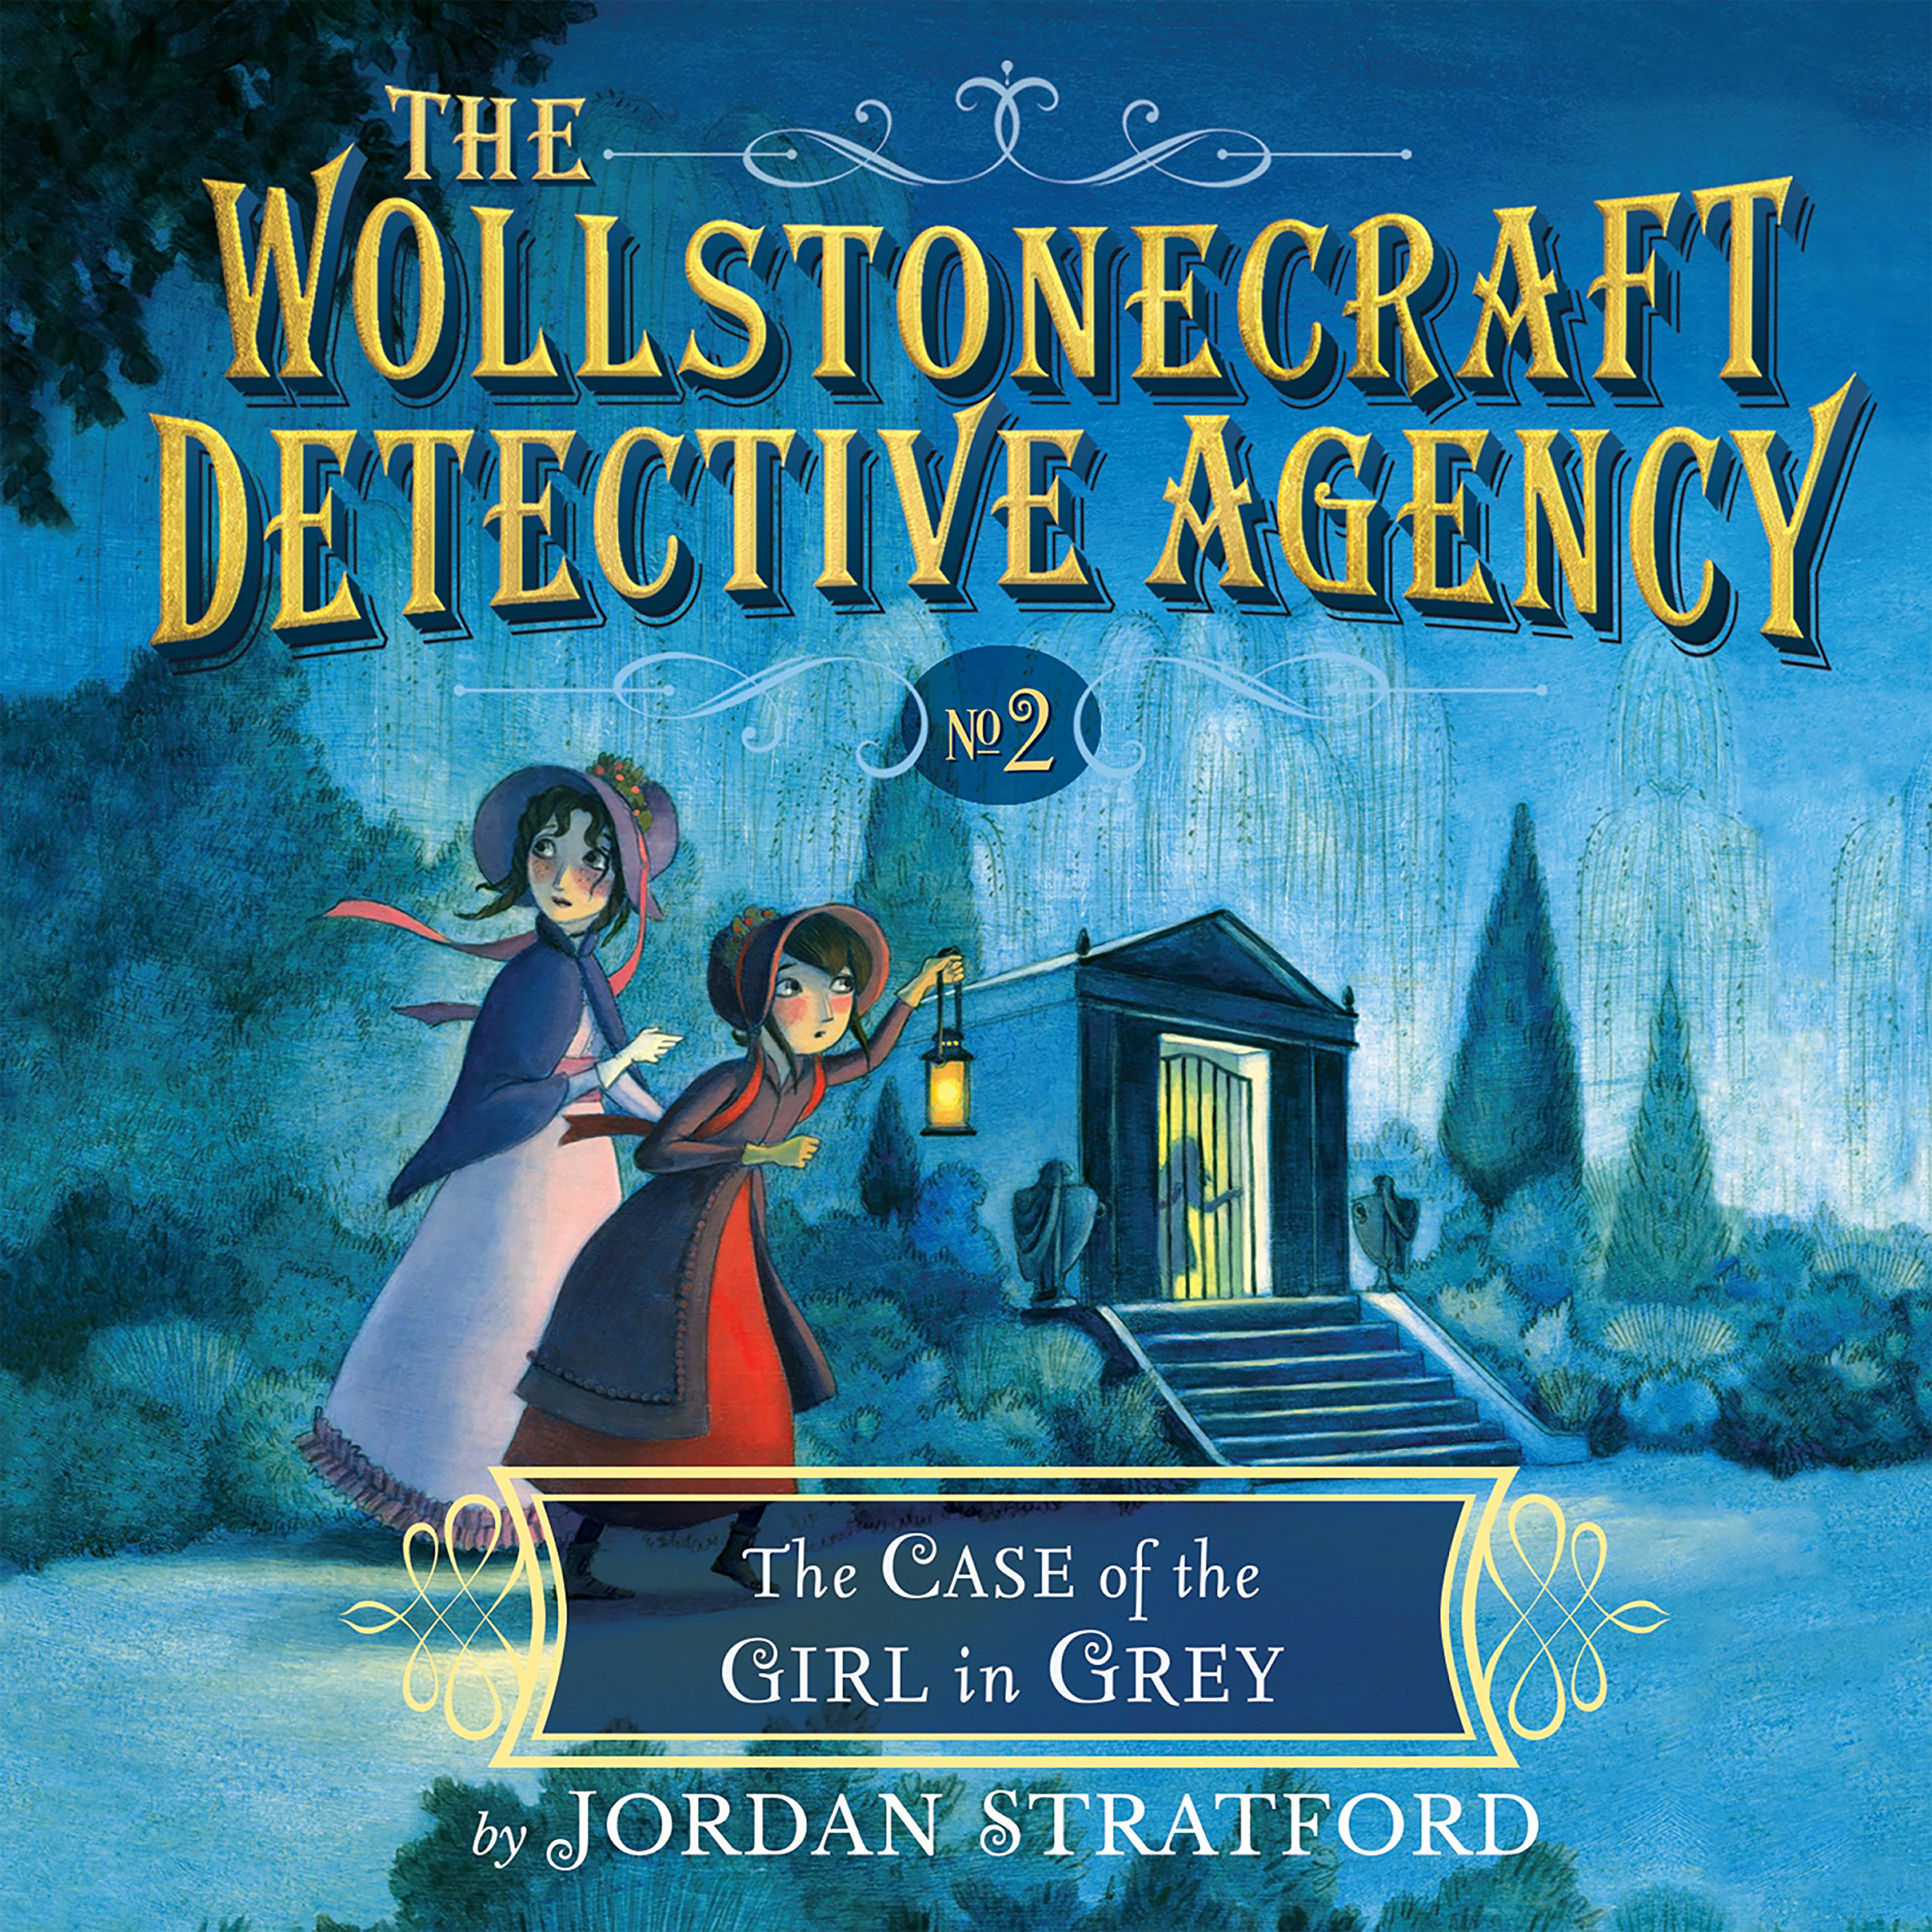 The Case of the Girl in Grey (Wollstonecraft Detective Agency)